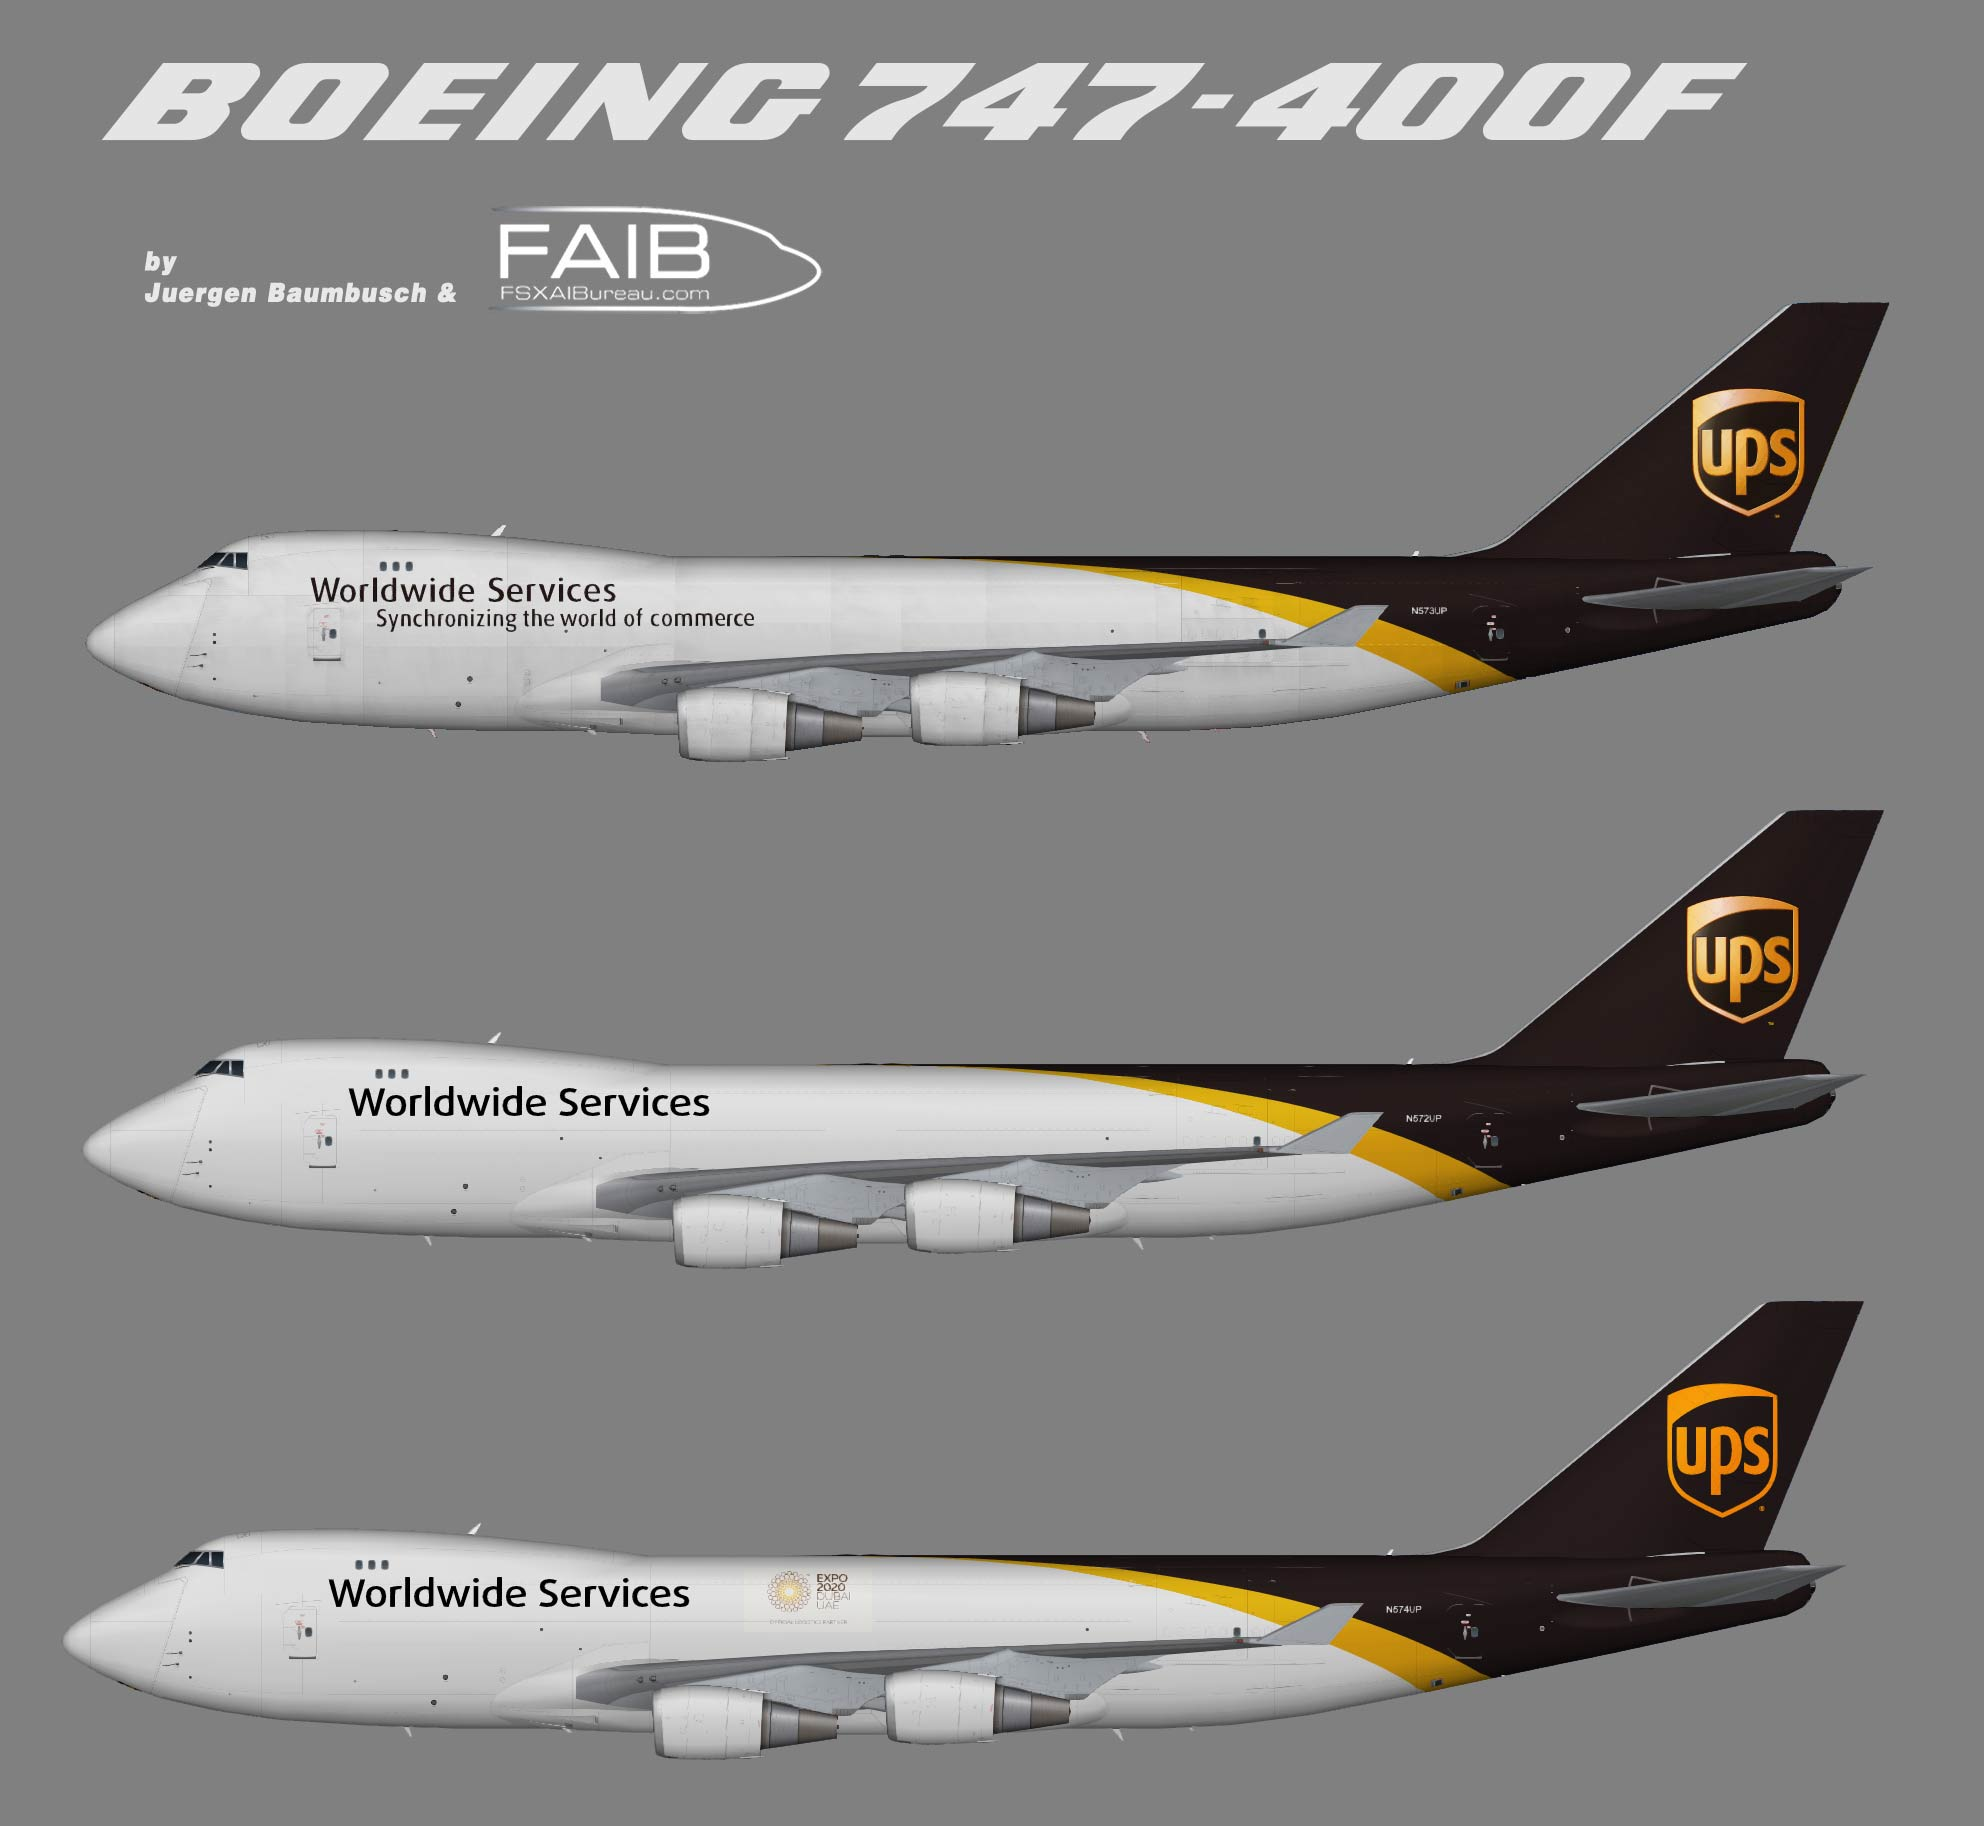 United Parcel Service Boeing 747-400F